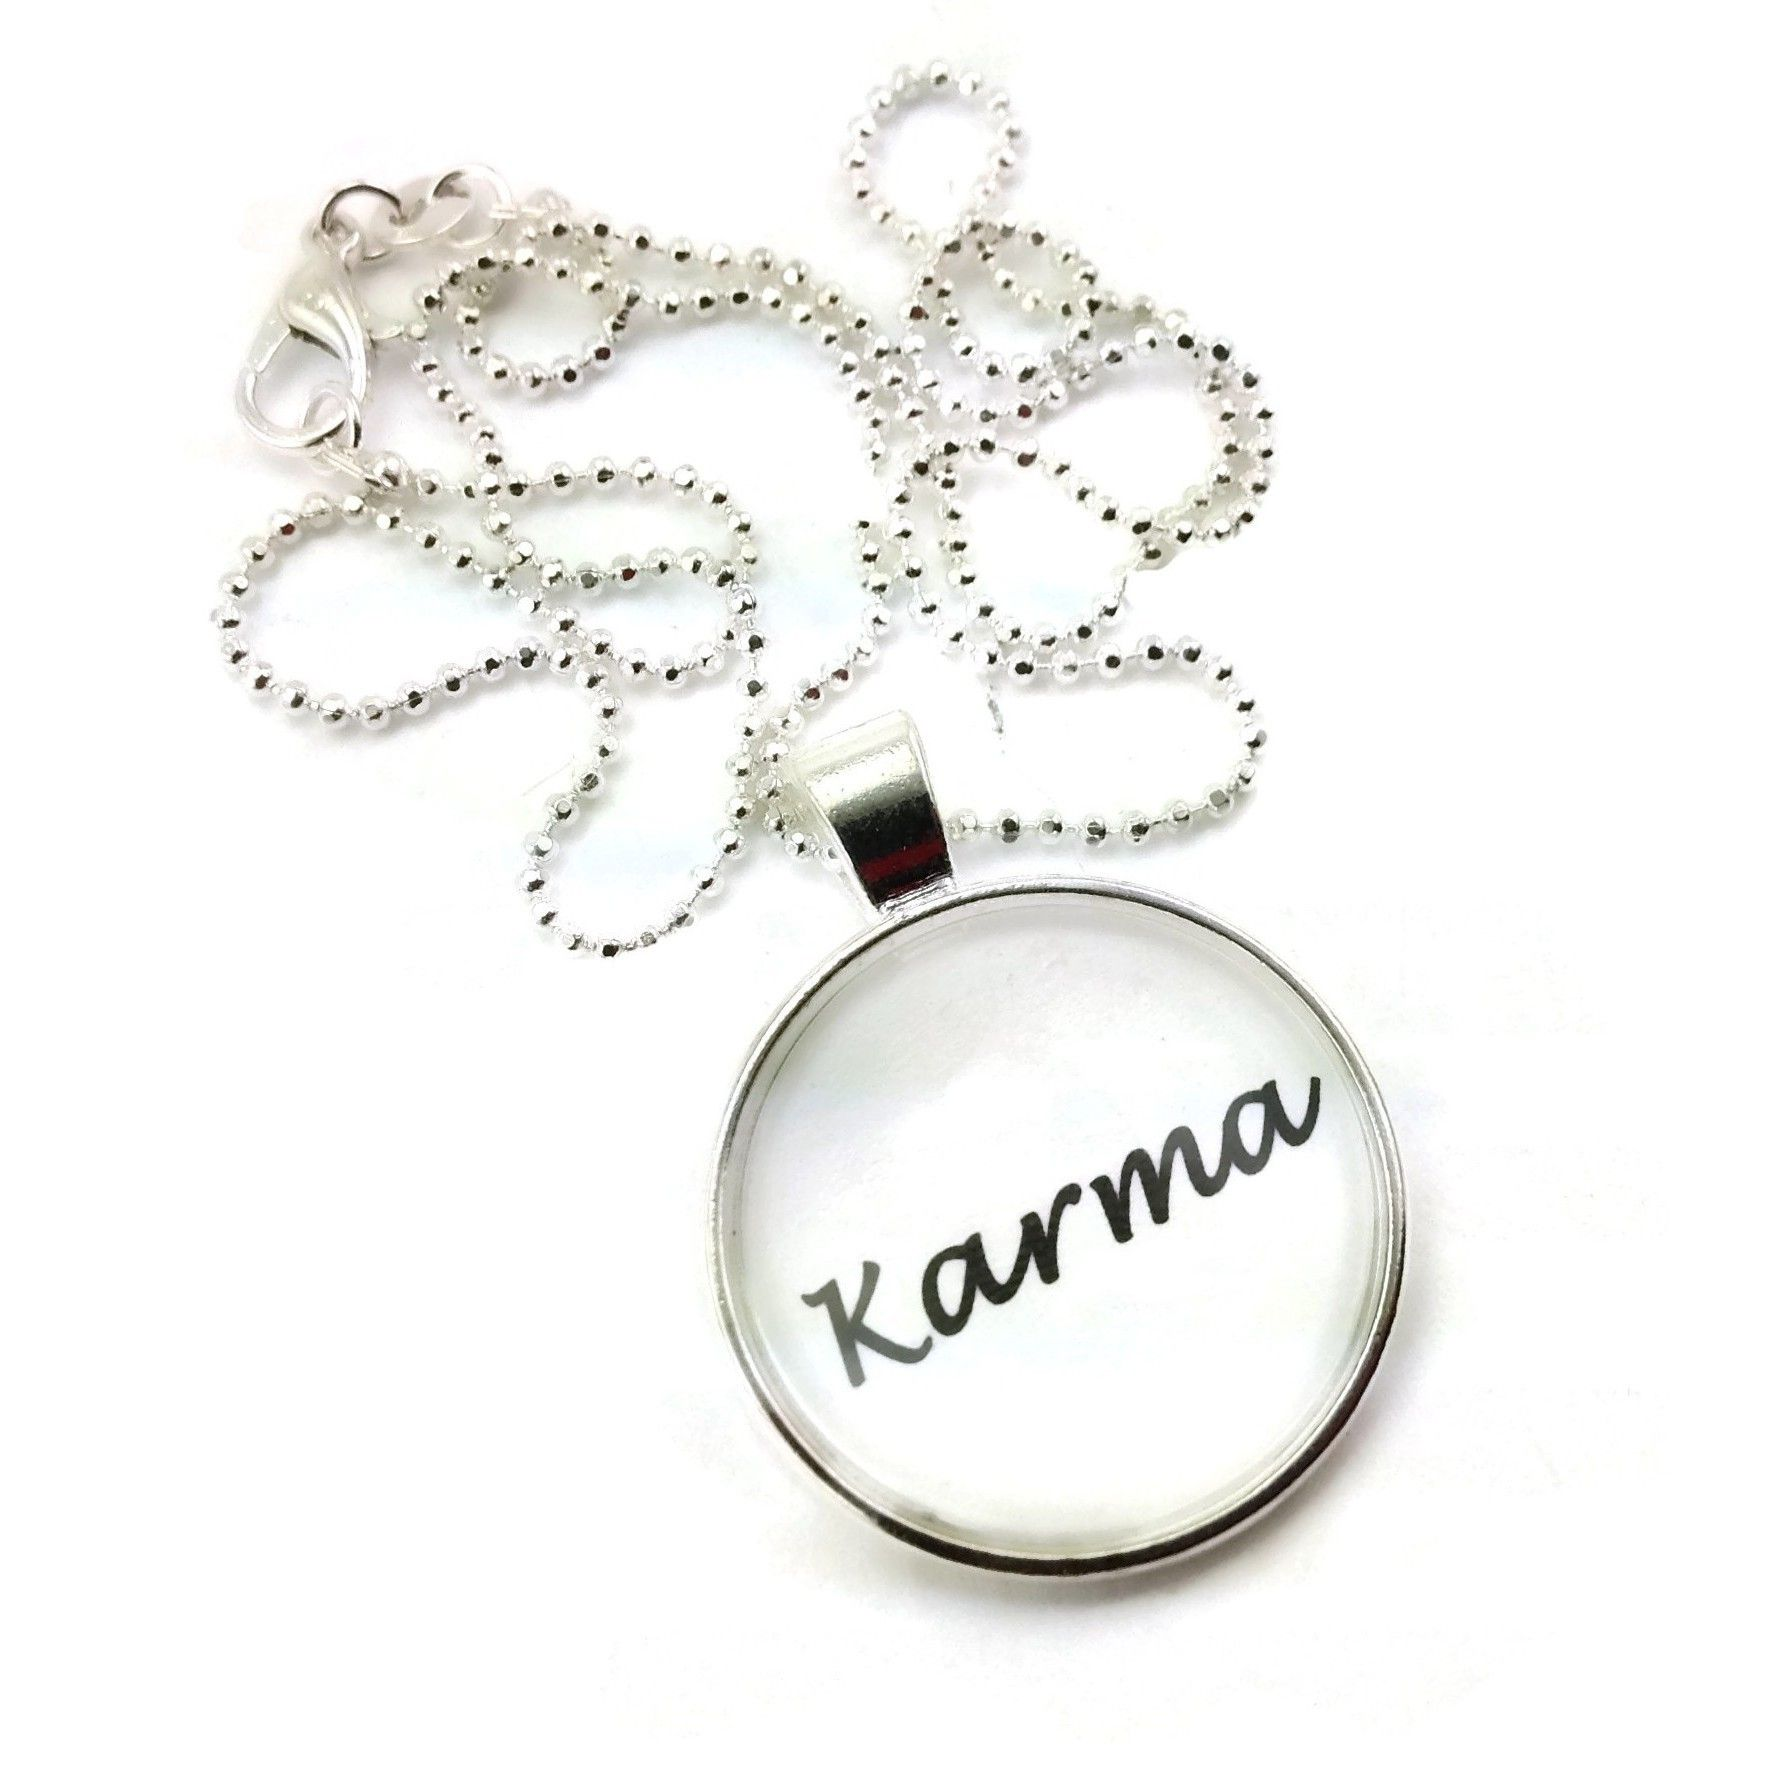 7c47483e4 A great simple design, that just states a simple word, 'Karma', simple but  to the point charm style necklace.